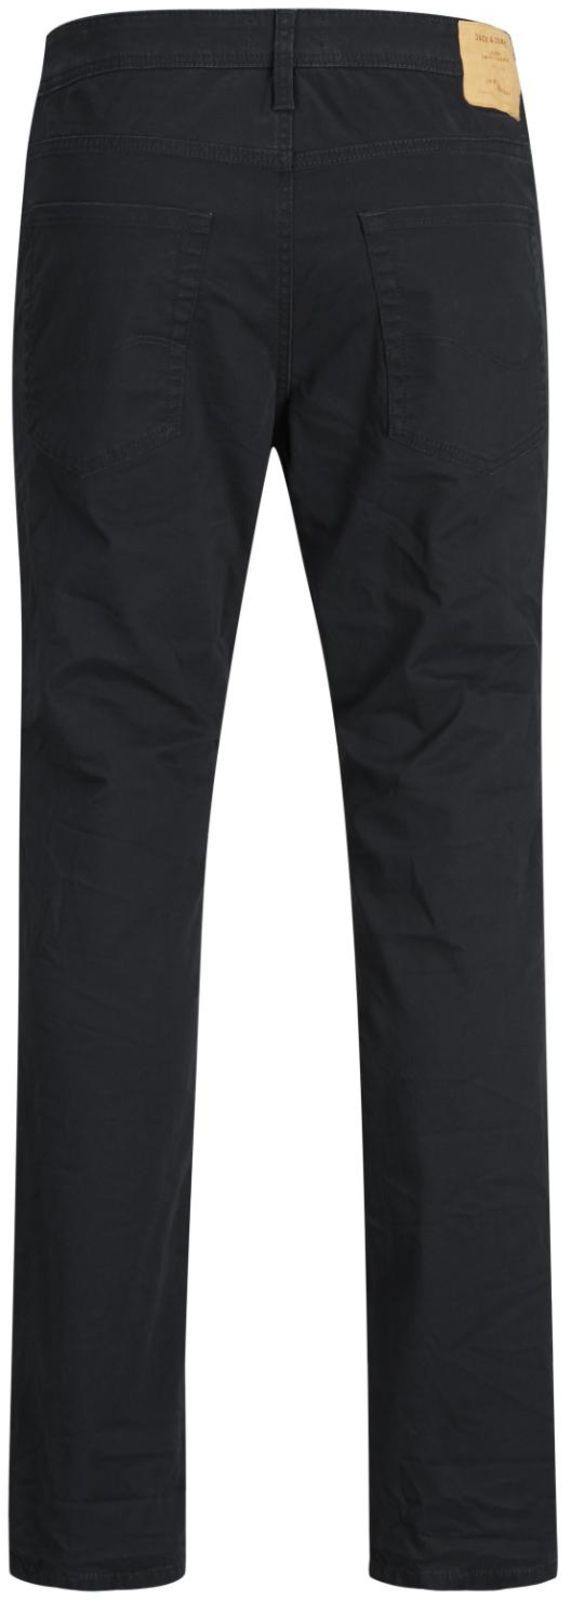 Jack & Jones Tim Original 410 Slim Fit Chinos Black